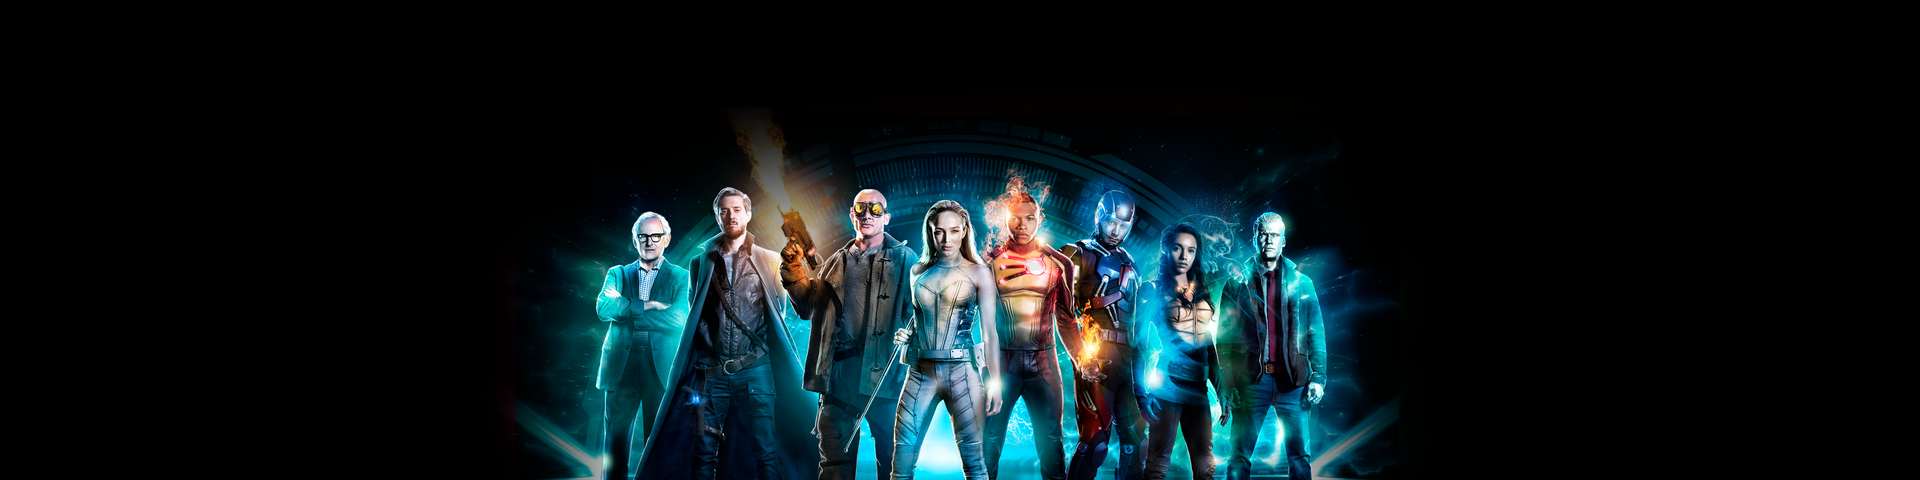 WarnerBros com | DC's Legends of Tomorrow | TV